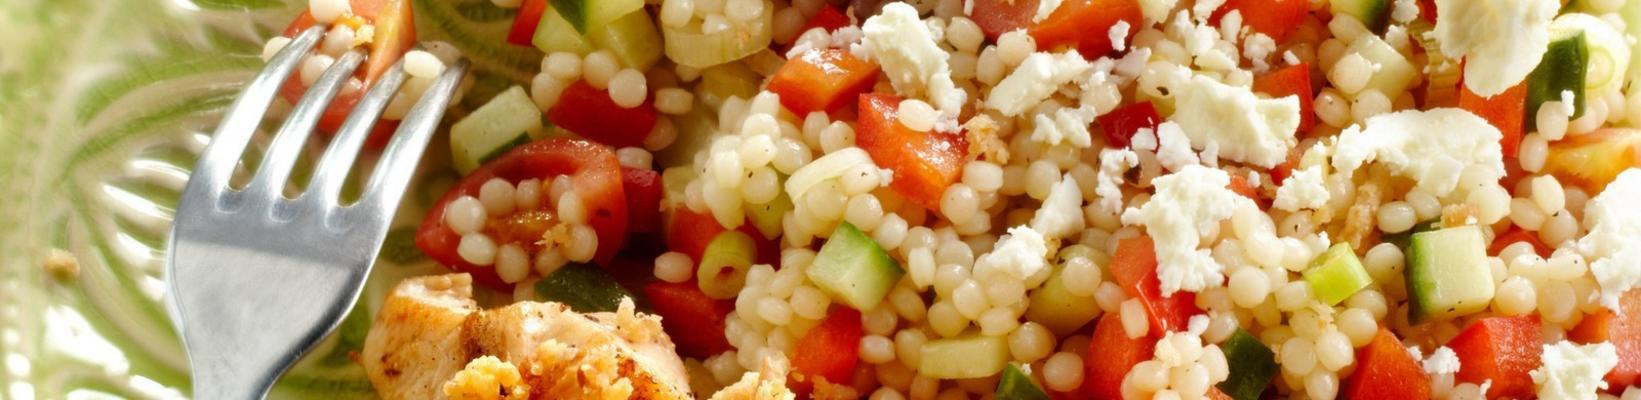 couscous salad with chicken kebab